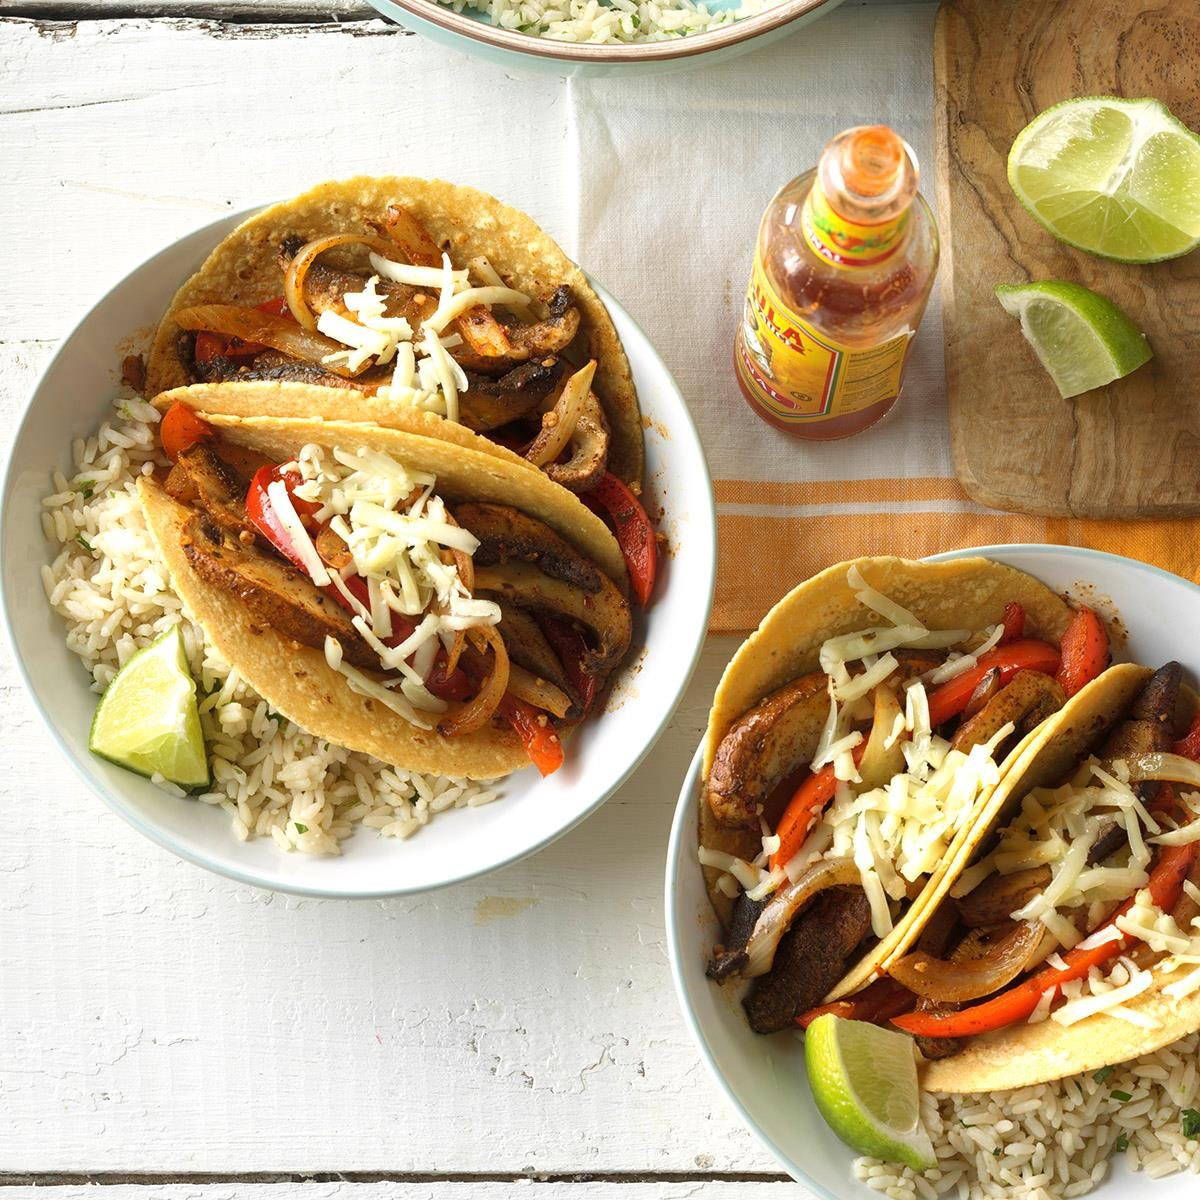 Wednesday: Chili-Lime Mushroom Tacos